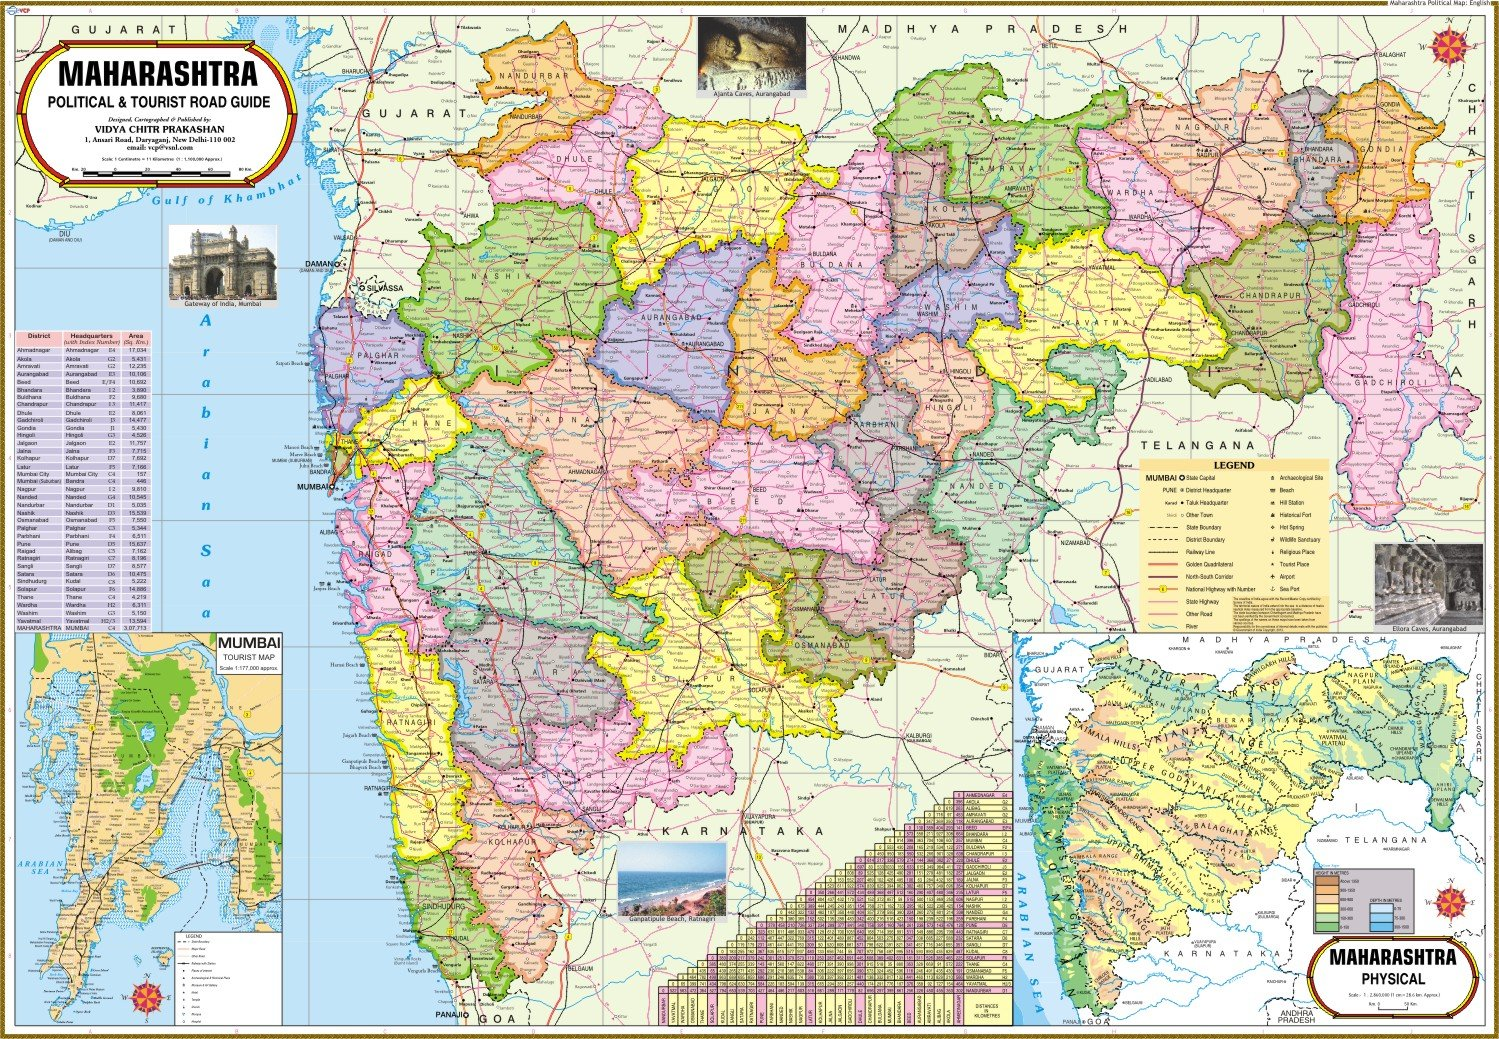 Buy Maharashtra Map Book Online At Low Prices In India - World map marathi language